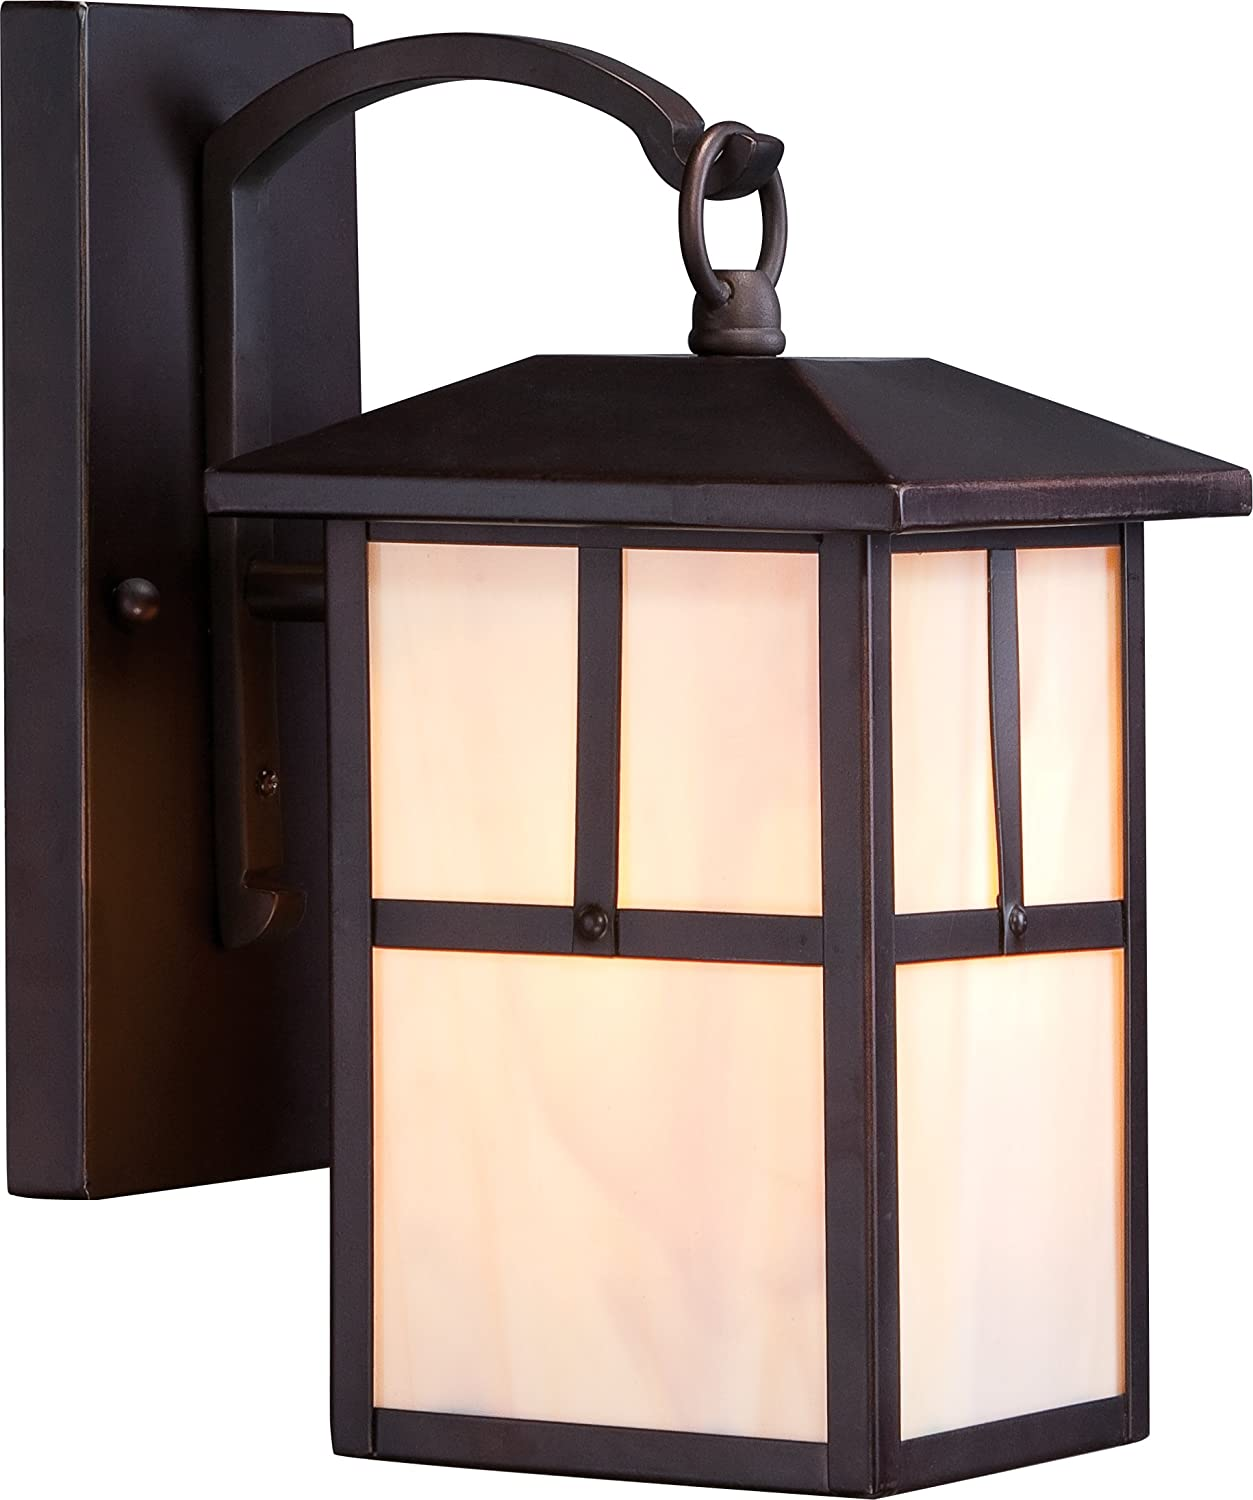 Nuvo Lighting 60 Al New life sold out. 5671 Tanner Small Light One 60-wat Lantern Wall